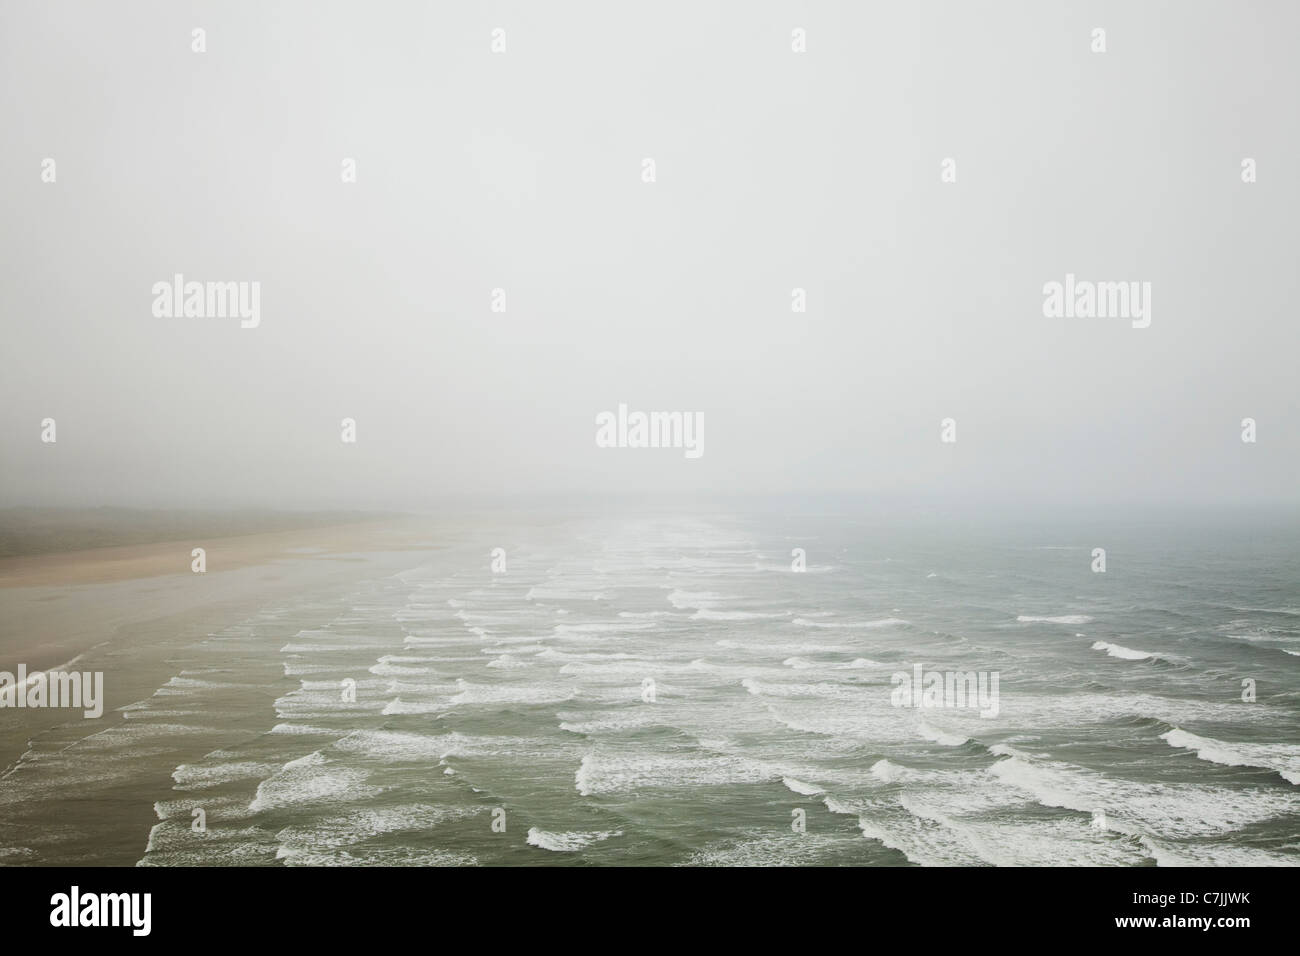 Waves crashing on foggy beach - Stock Image